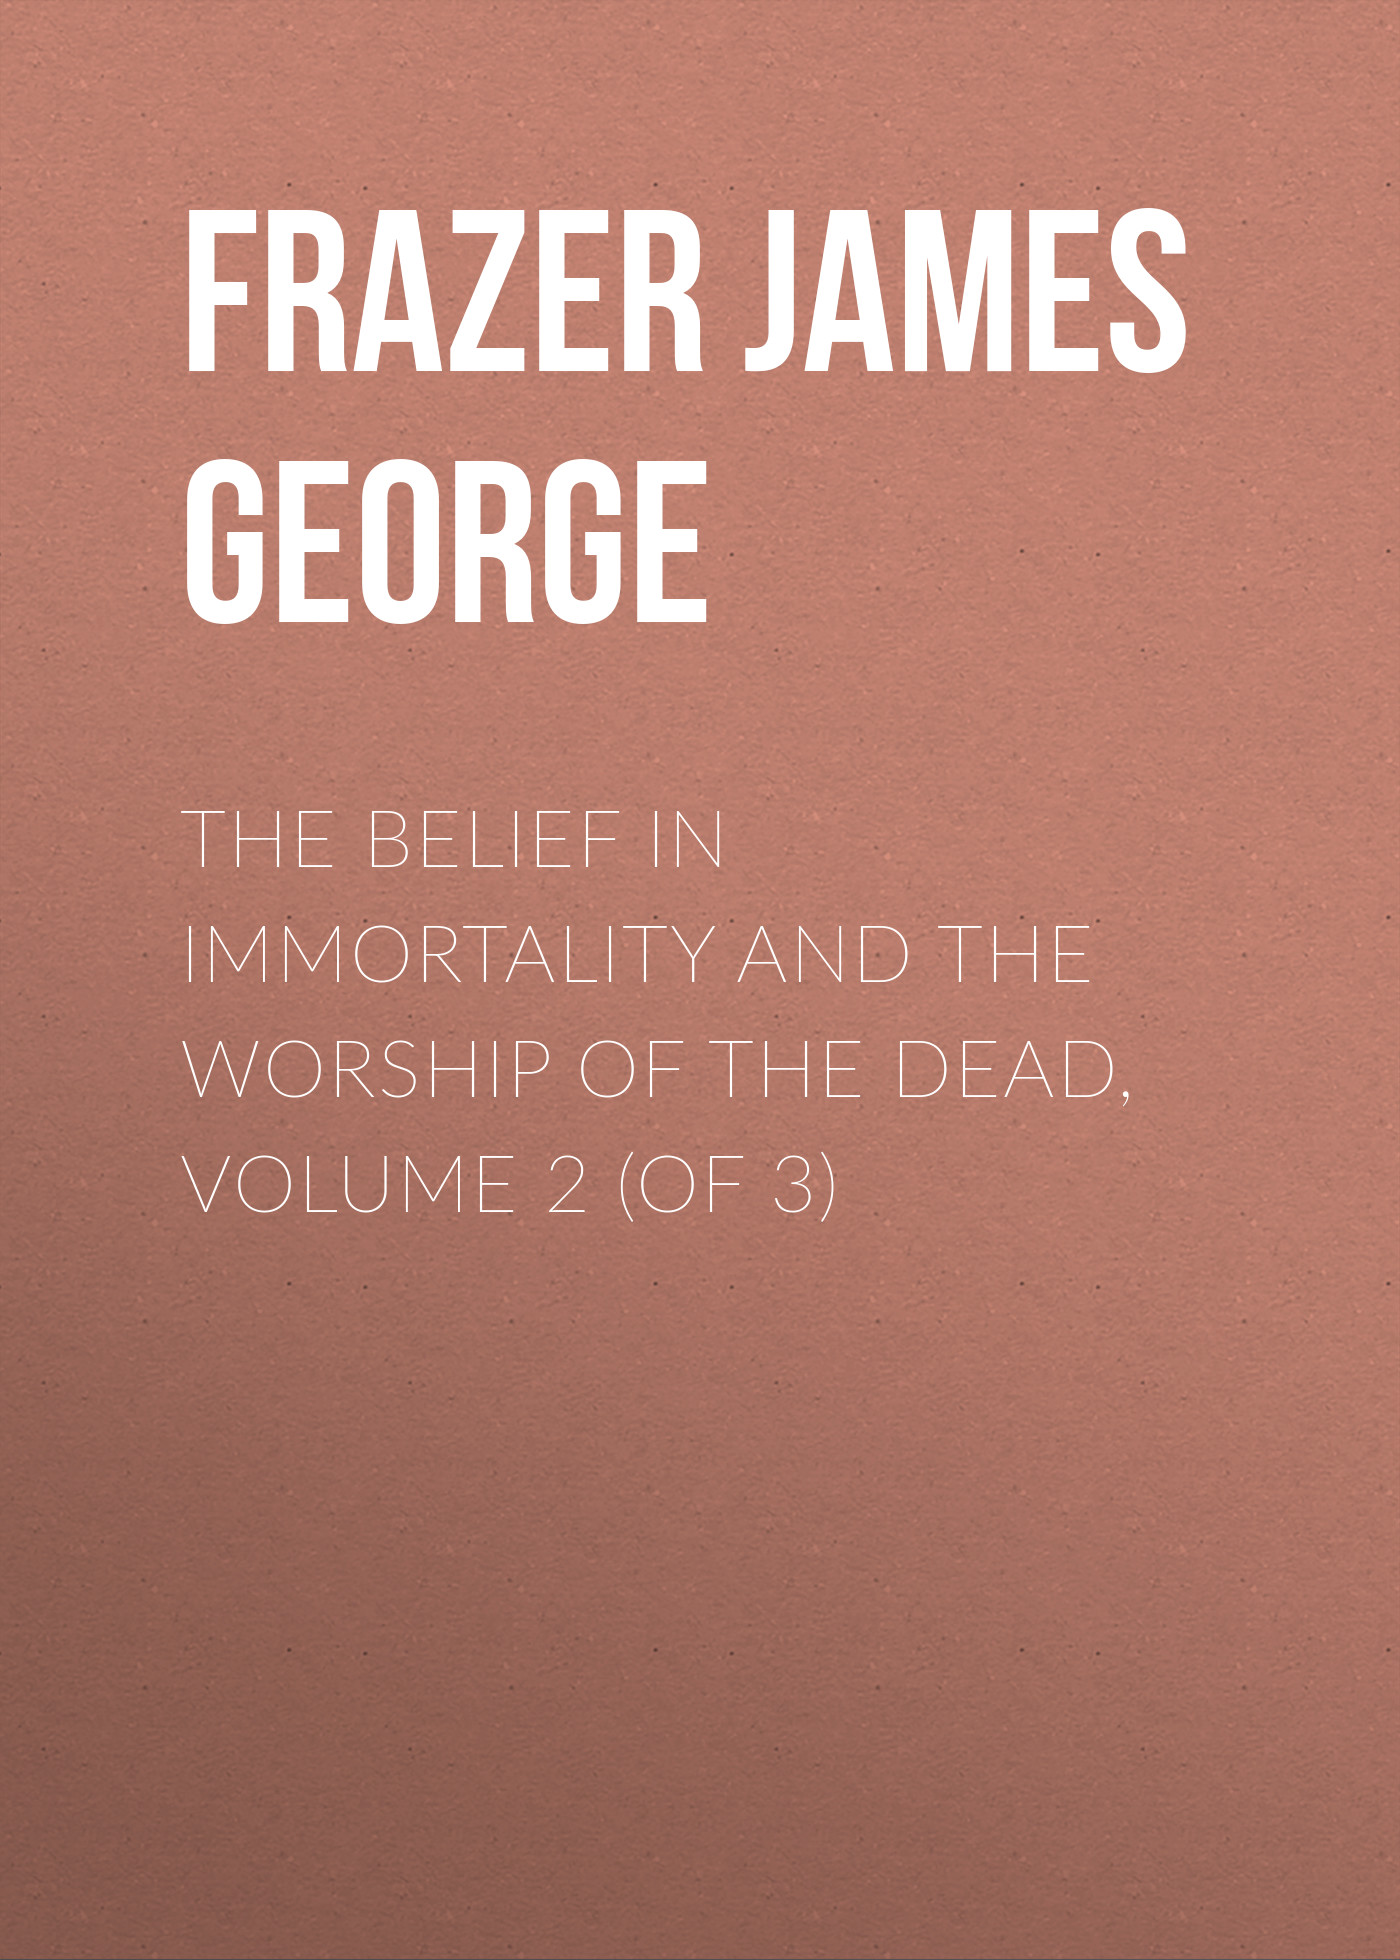 Frazer James George The Belief in Immortality and the Worship of the Dead, Volume 2 (of 3) цена